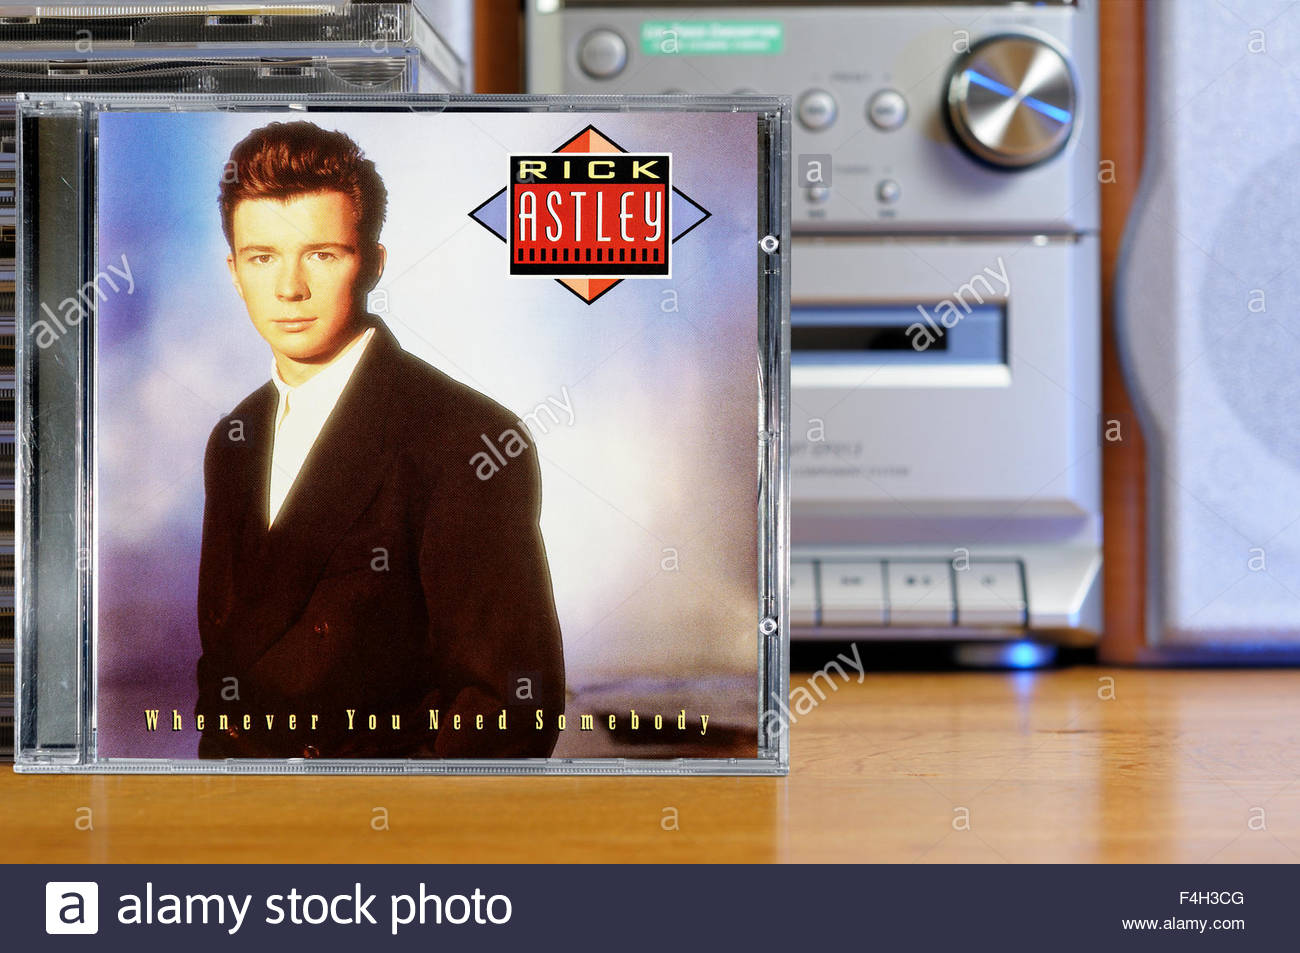 Rick Astley 1987 debut album 'Whenever You Need Somebody', piled music CD cases, England - Stock Image